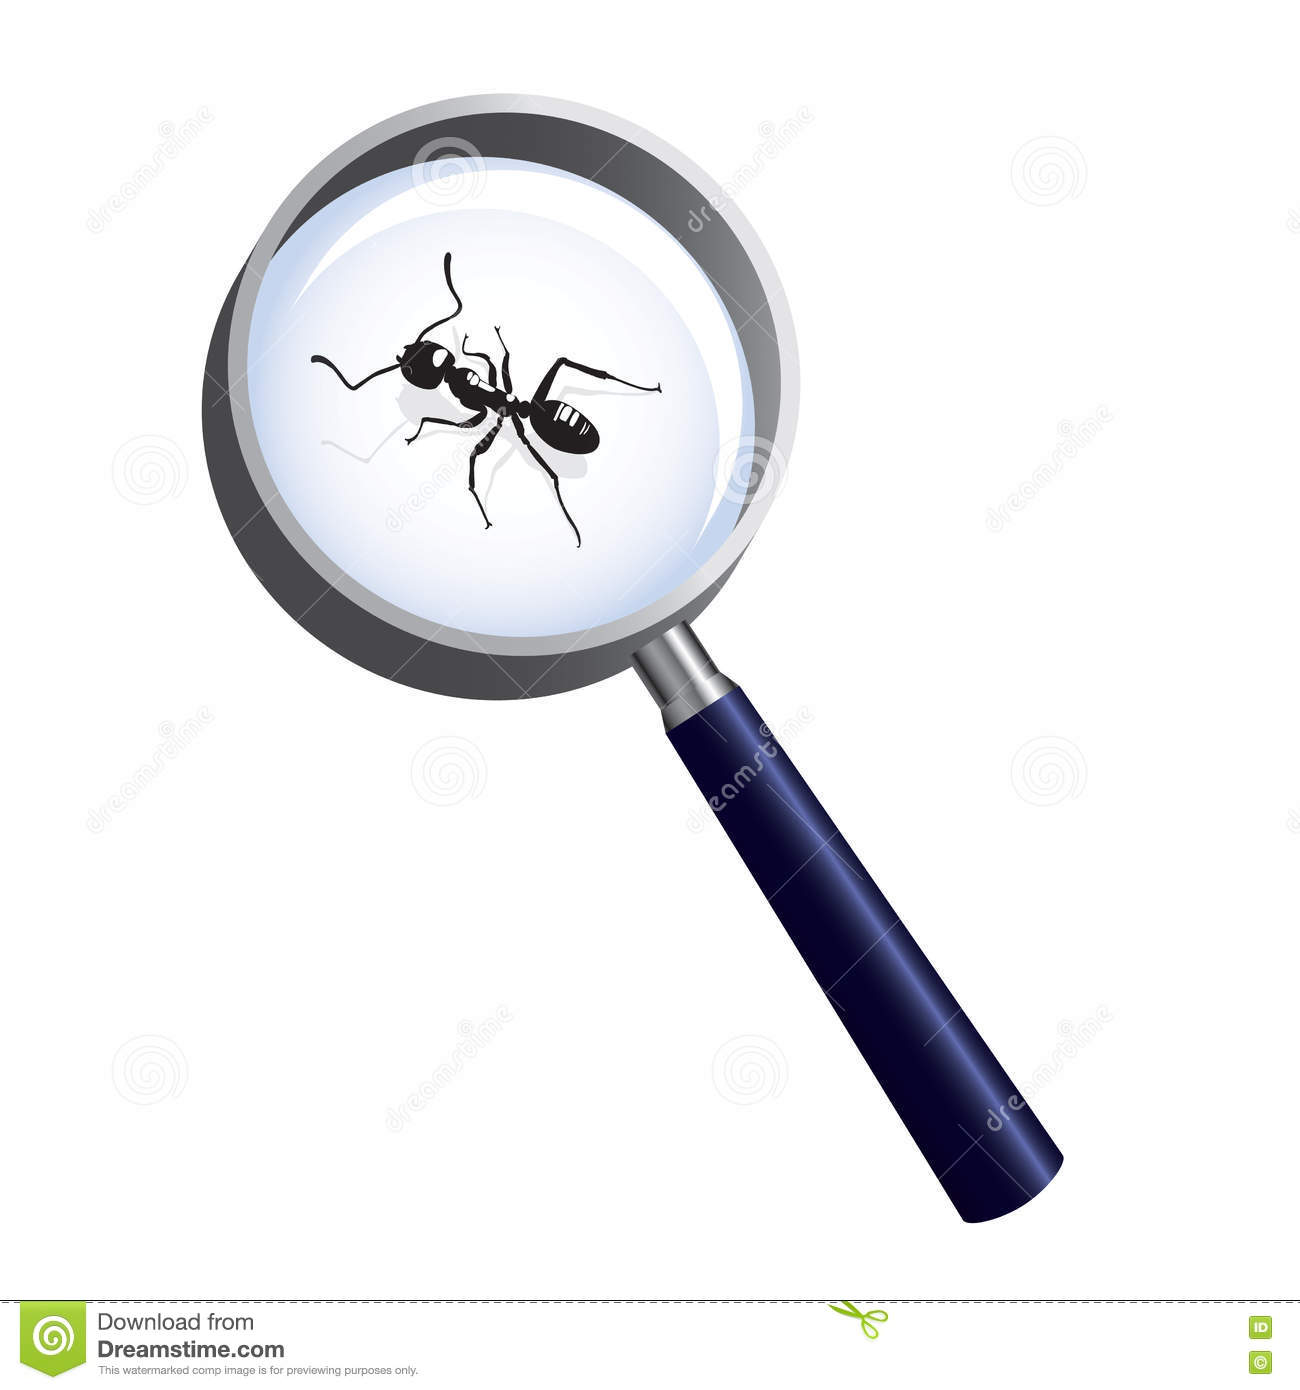 Ant Magnifying Glass